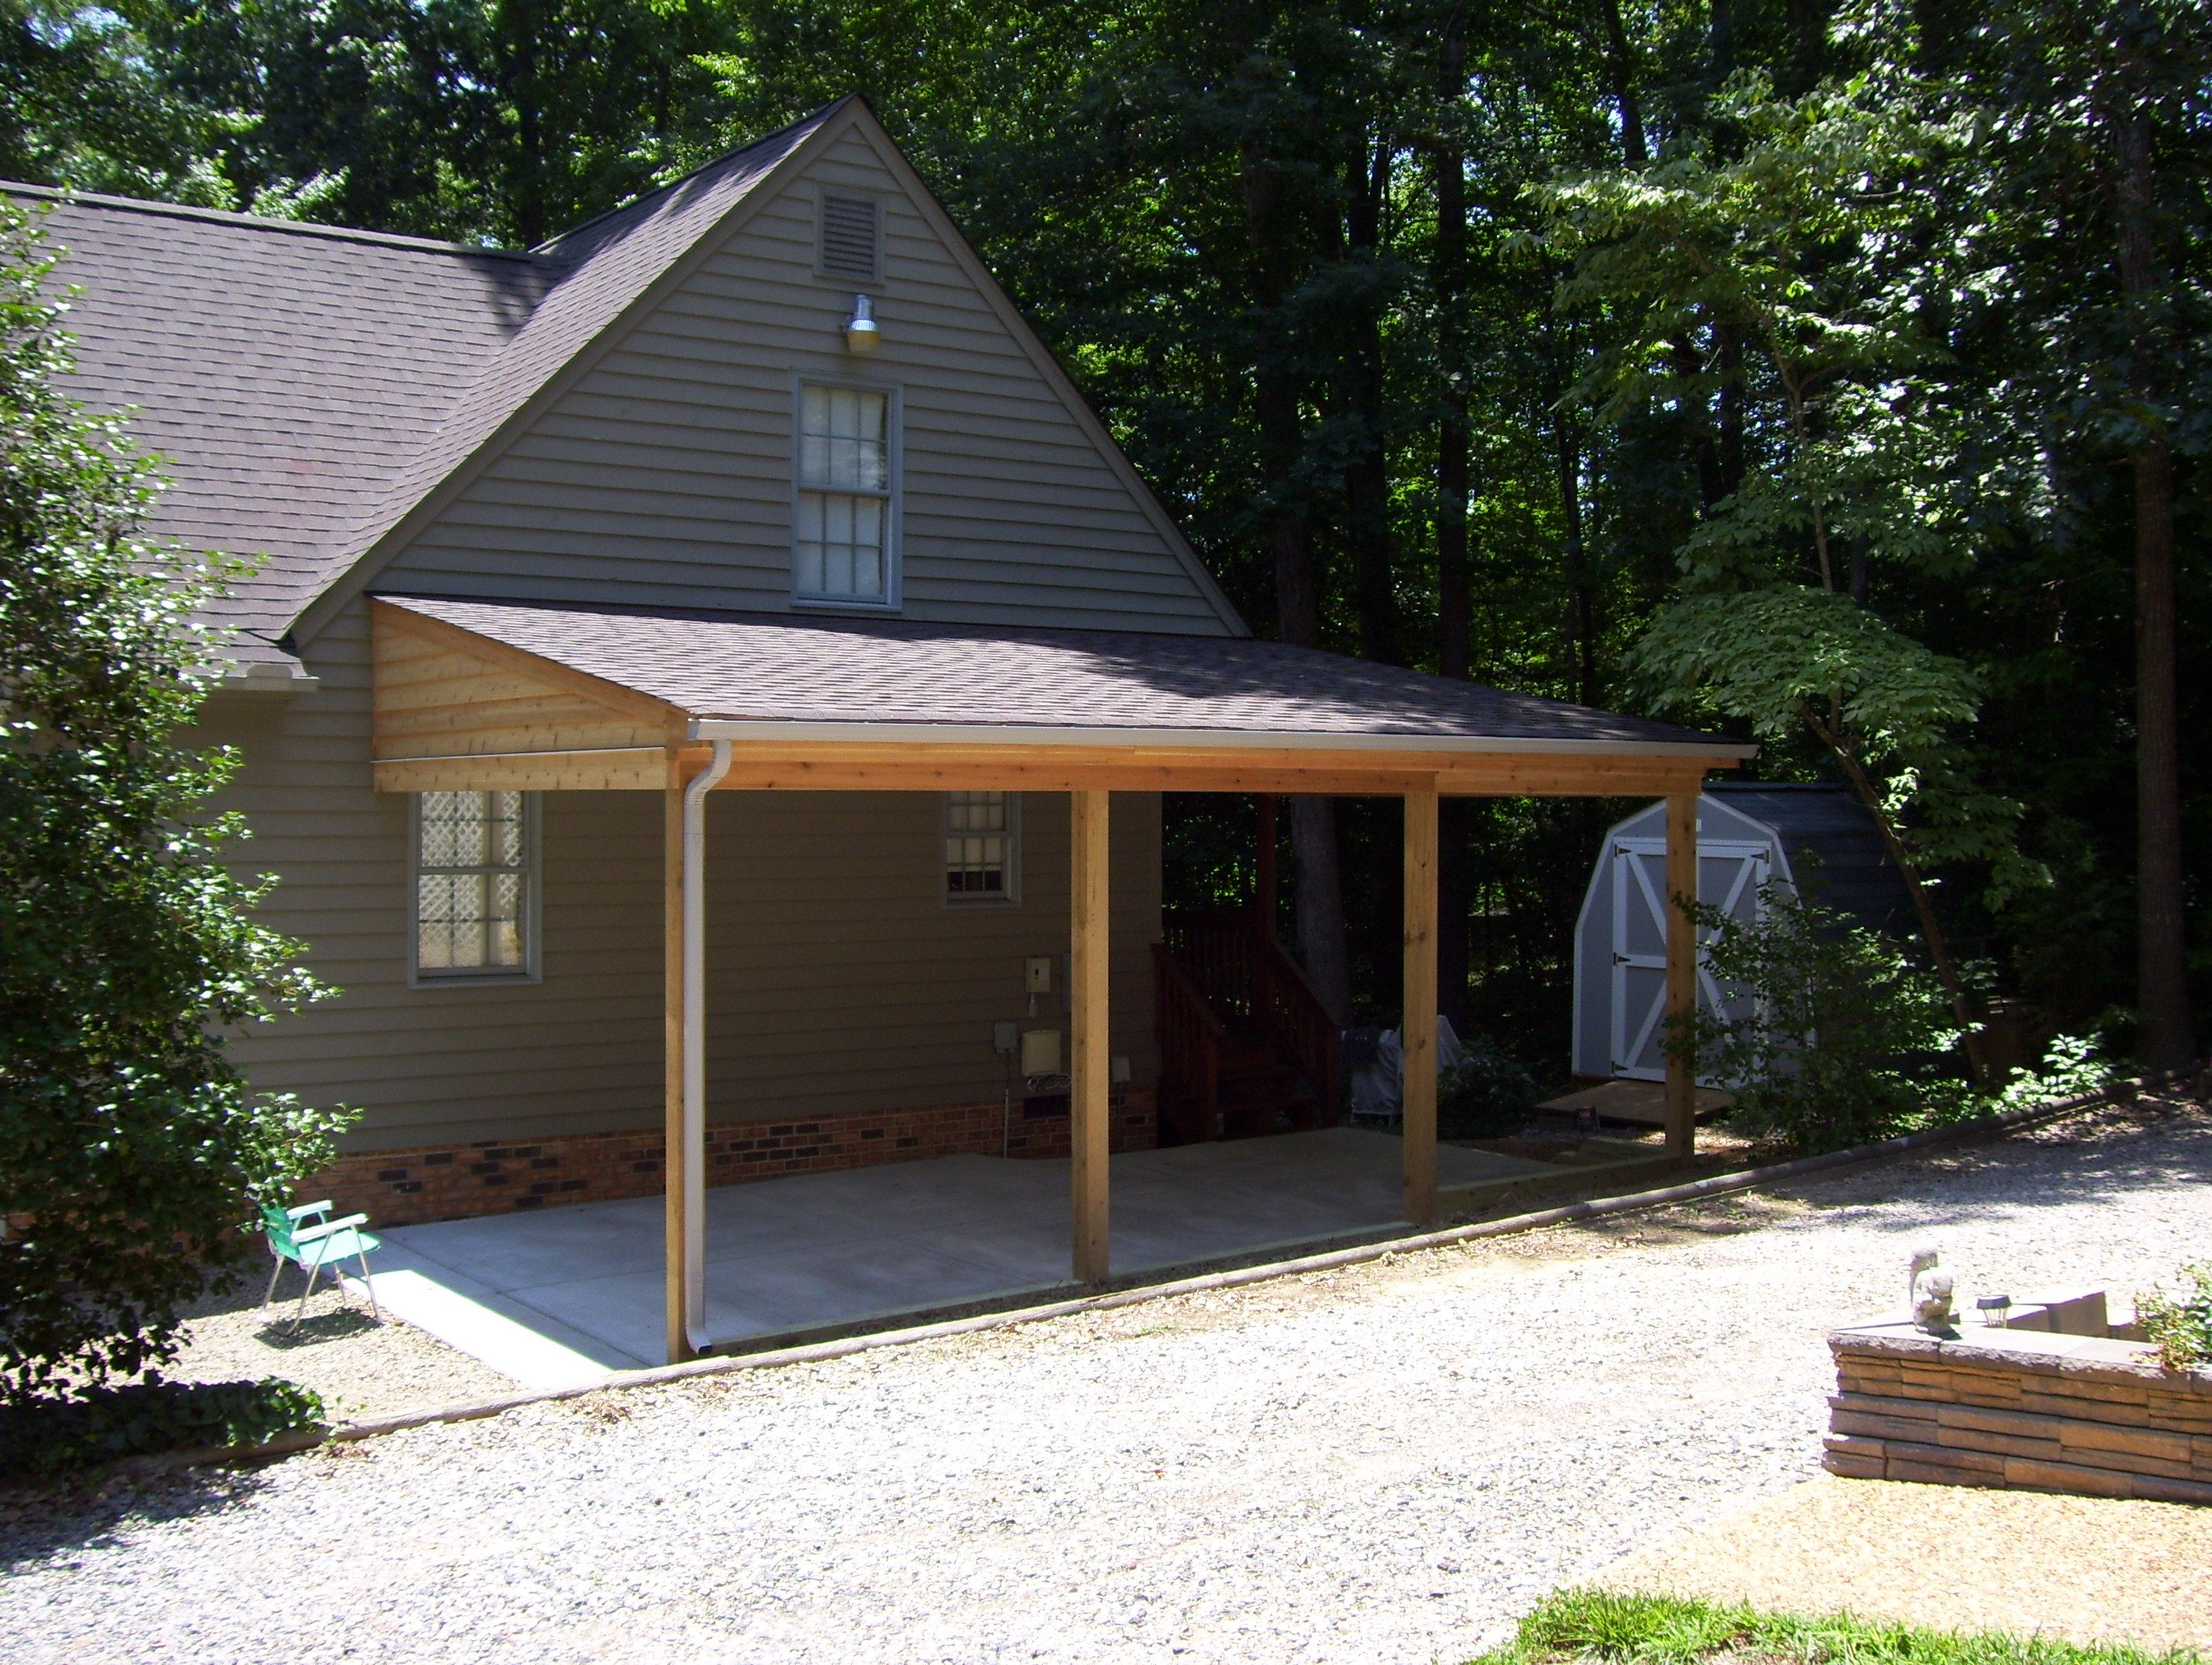 Attached carport photos house remodel pinterest for Attached carport plans free